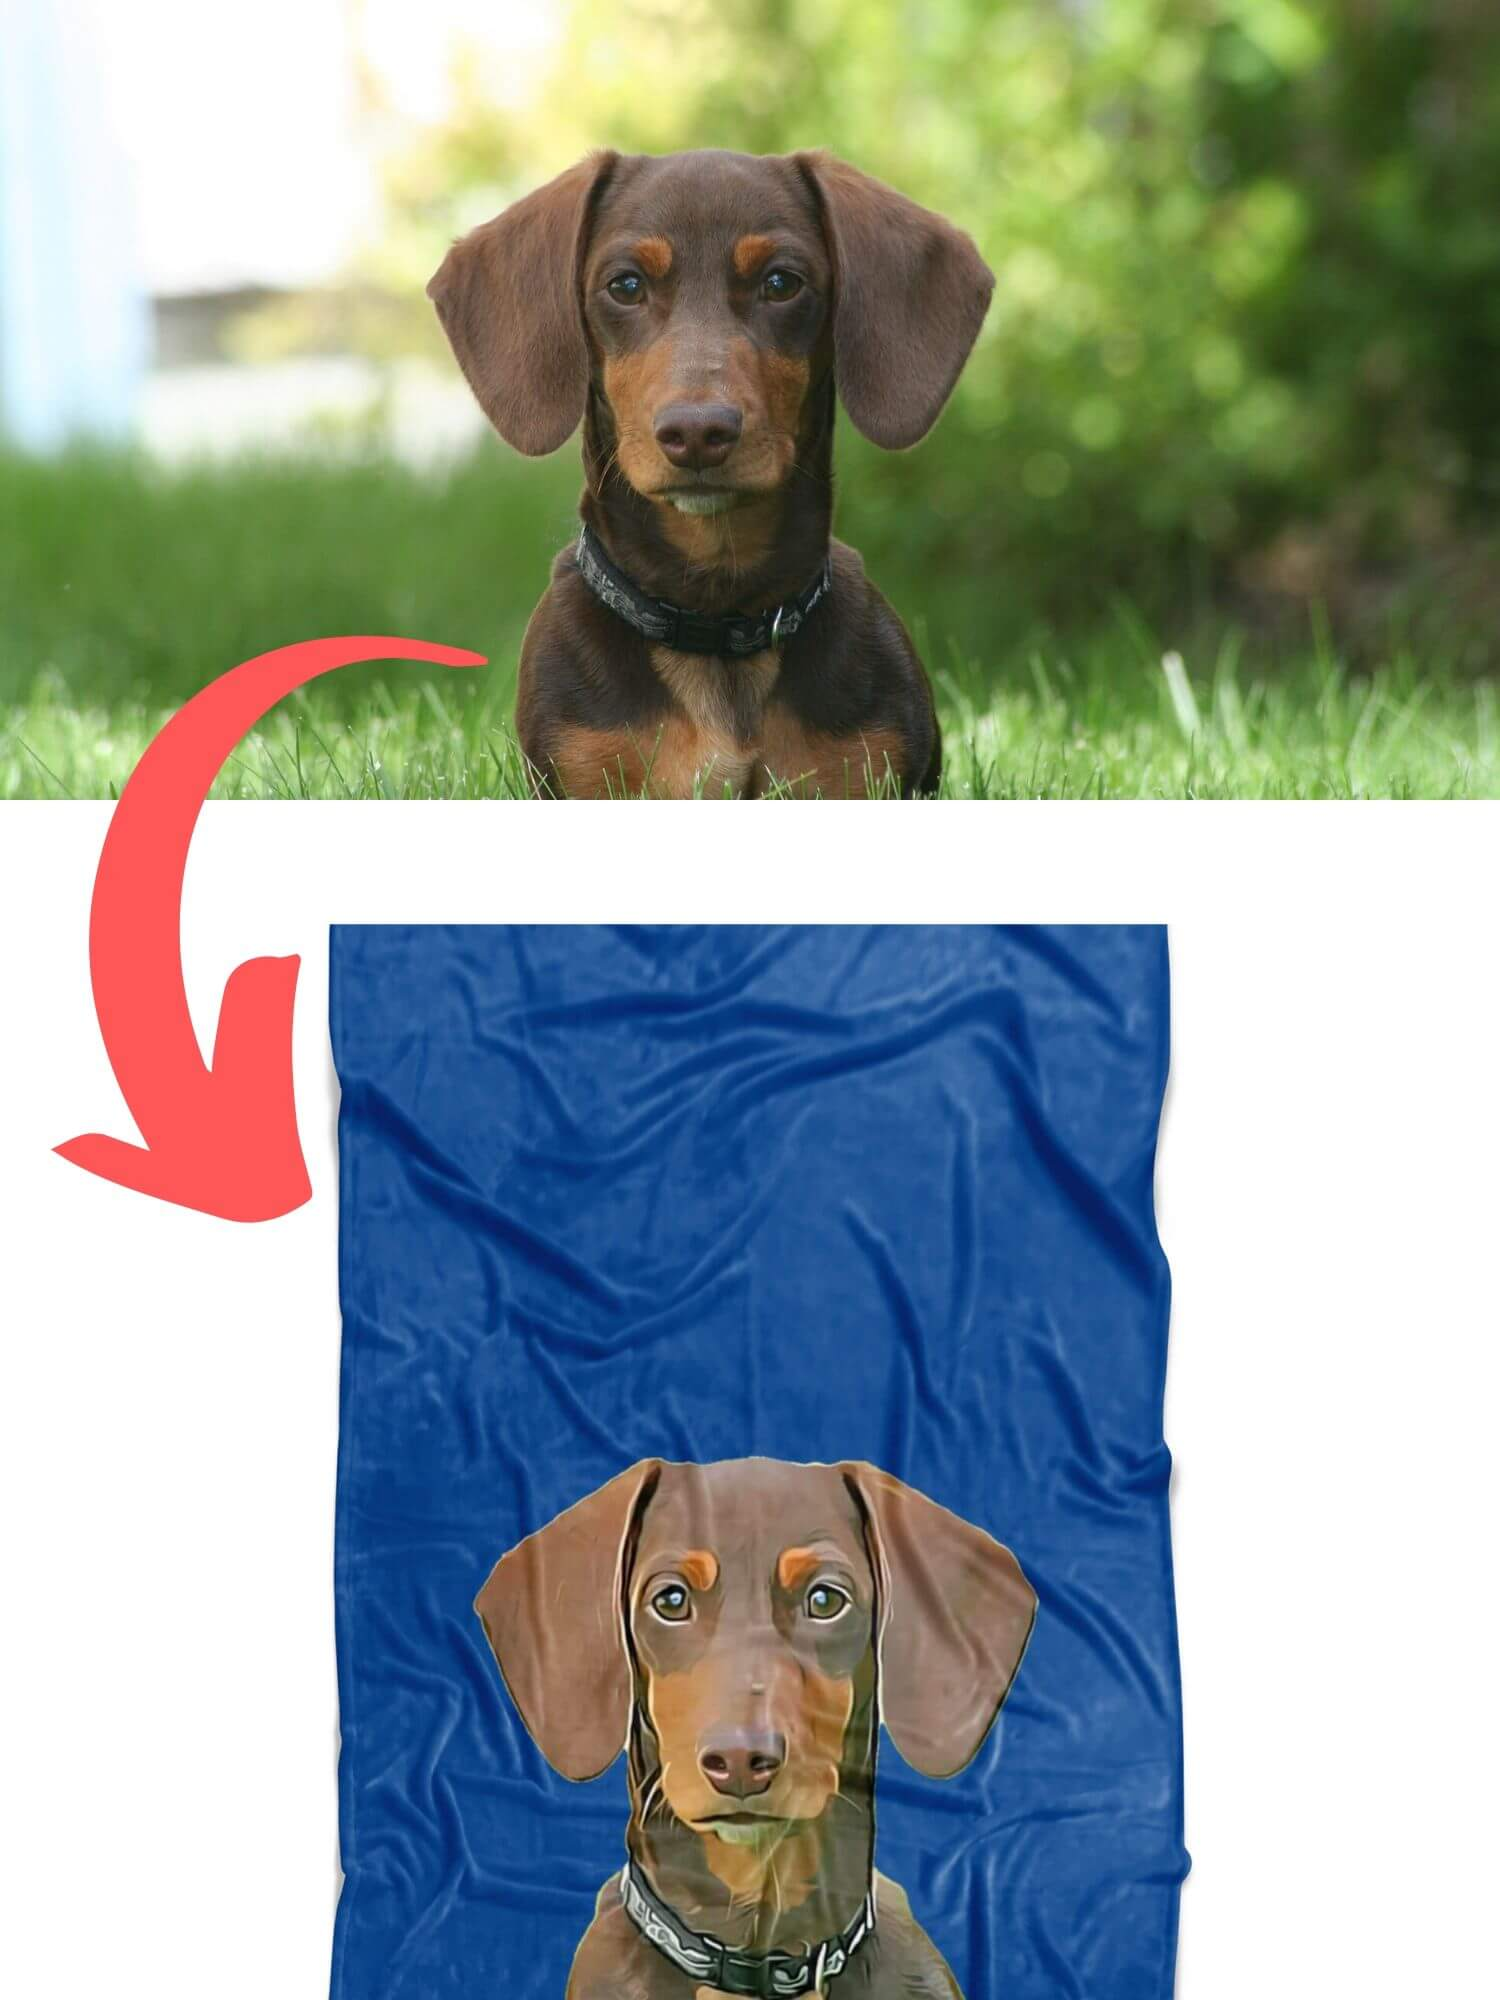 Personalized Fleece Blanket for Dogs or Humans